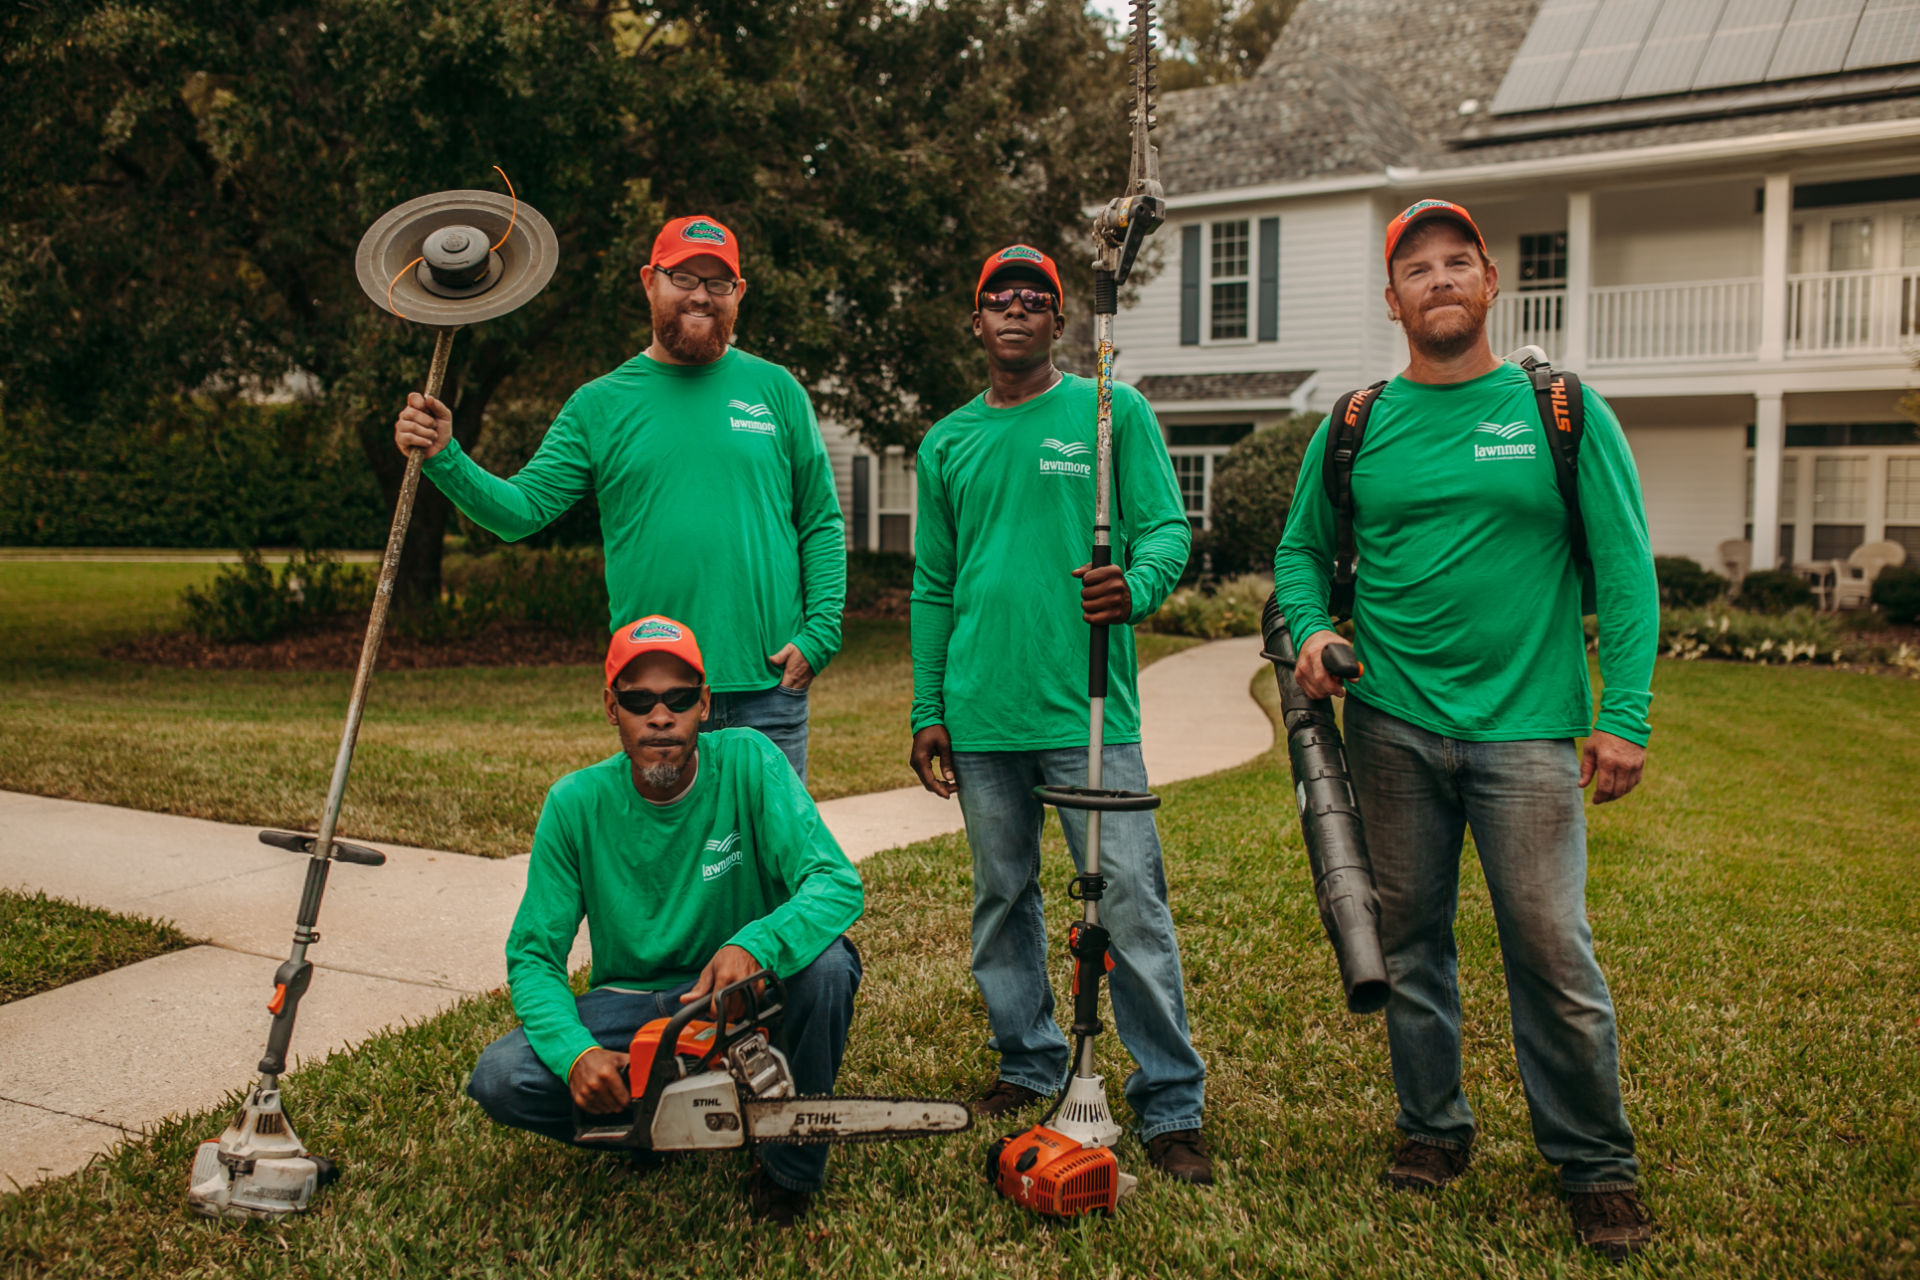 LawnMore crew members with mowing equipment smiling for a group photo